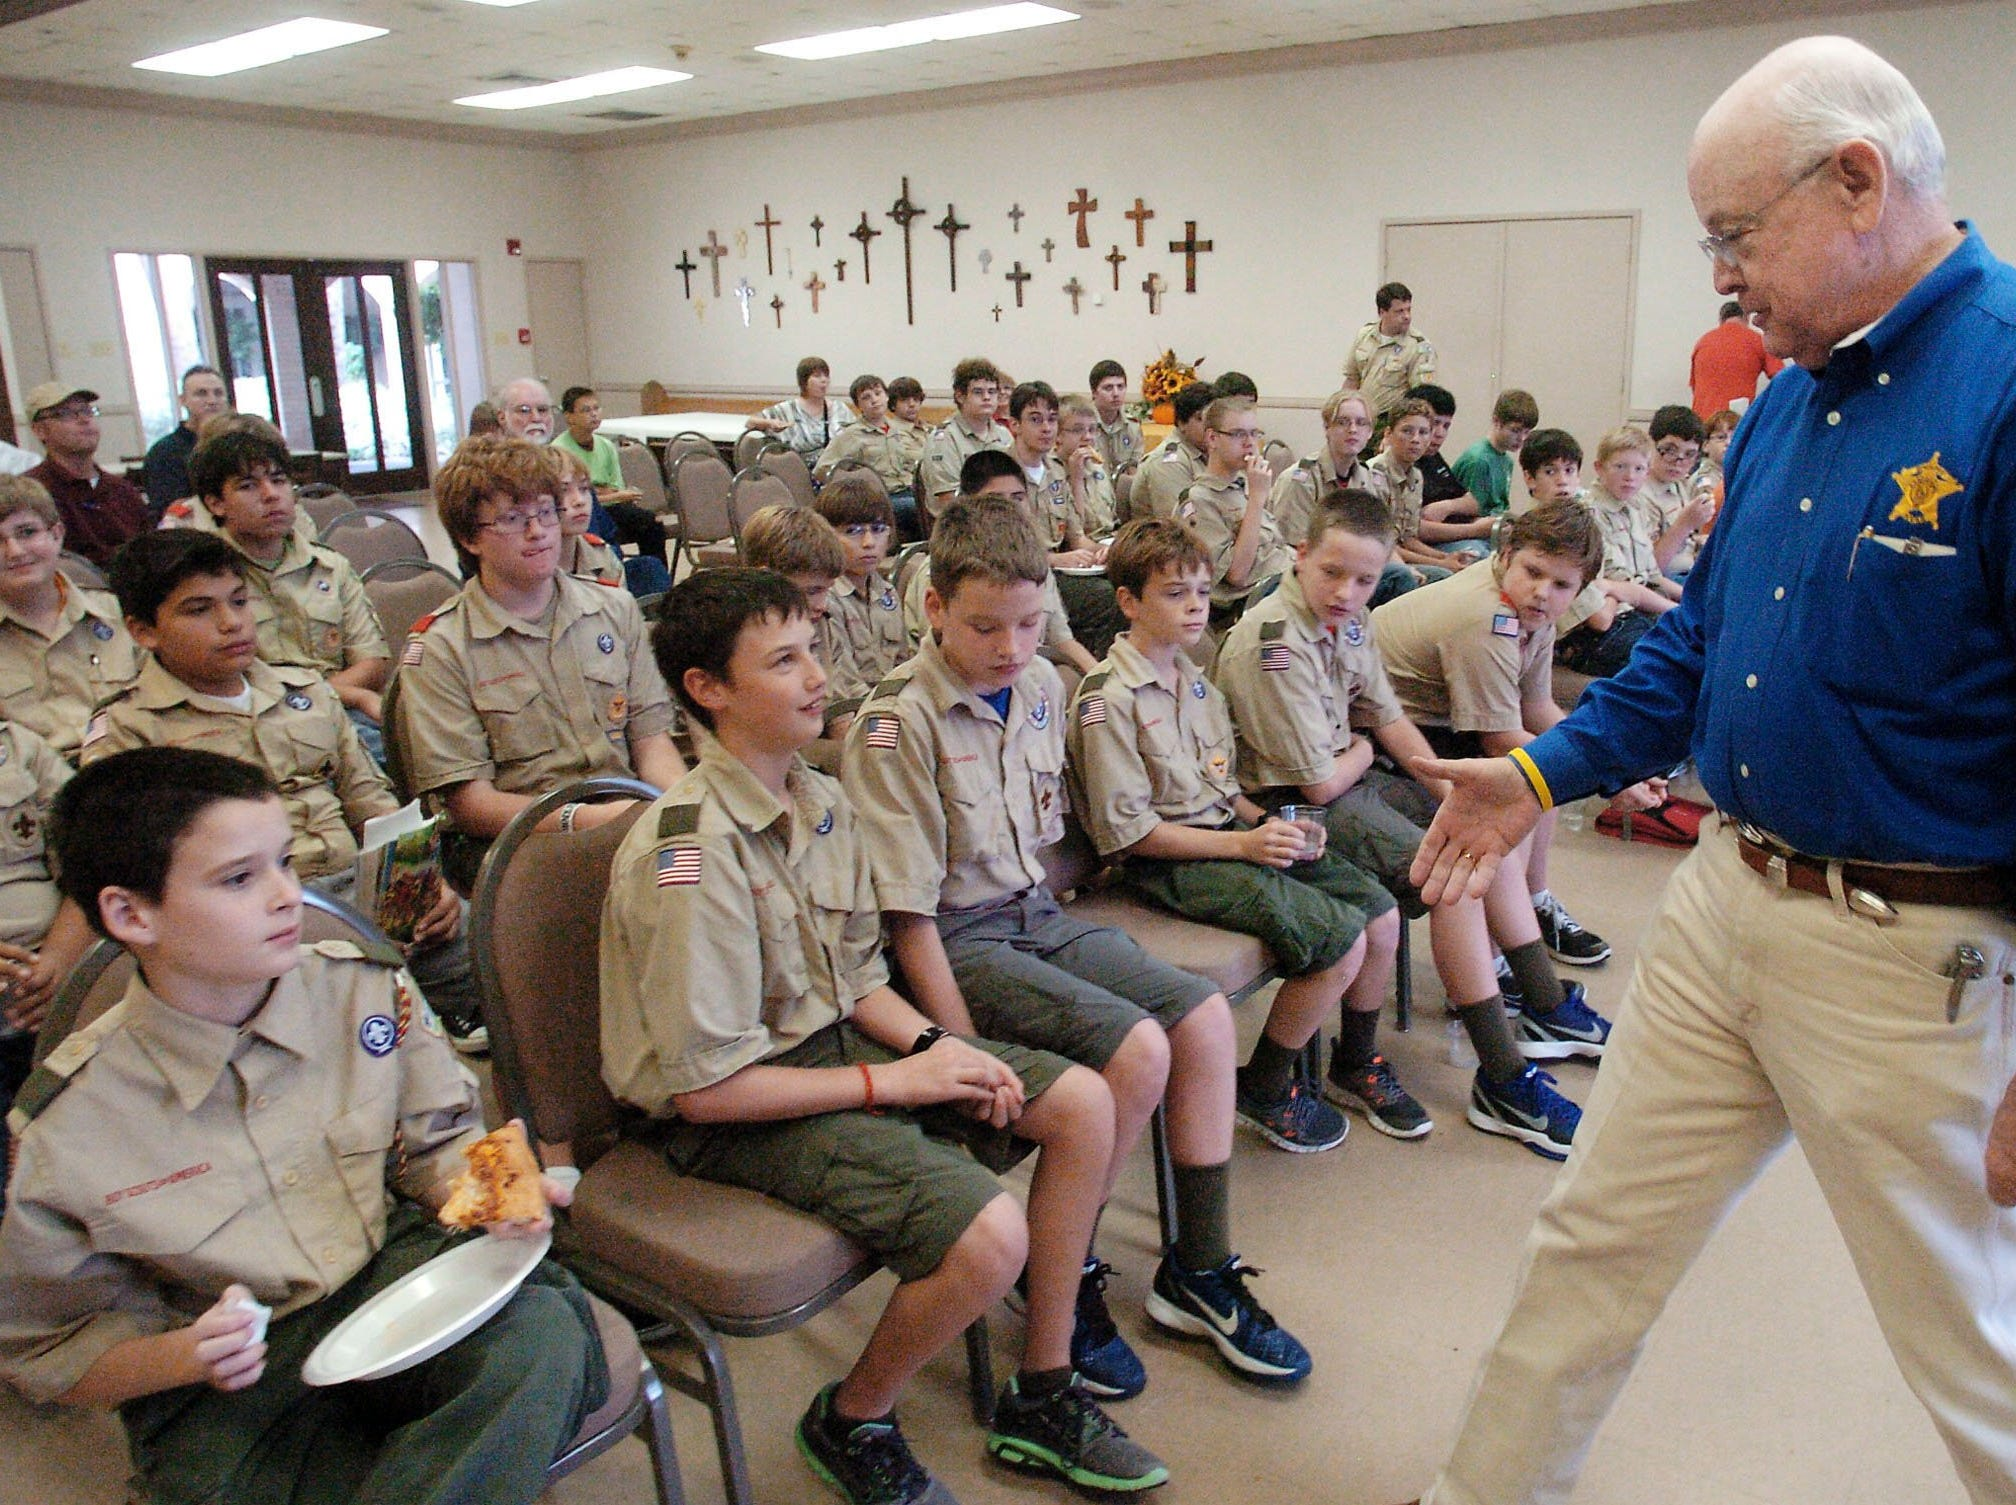 Nueces County sheriff, Jim Kaelin, was the keynote speaker to about 40 boy scouts from Troop #2 at First Presbyterian Church on Carancahua st. on Saturday morning.  This was part of  the troop's 100 years of existence celebration.  A workshop was held in the morning and then Sheriff Kaelin arrived at noon to be their keynote speaker.  Here kaelin introduces himself to the scouts and teaches them what it means when somebody shakes peoples hands.